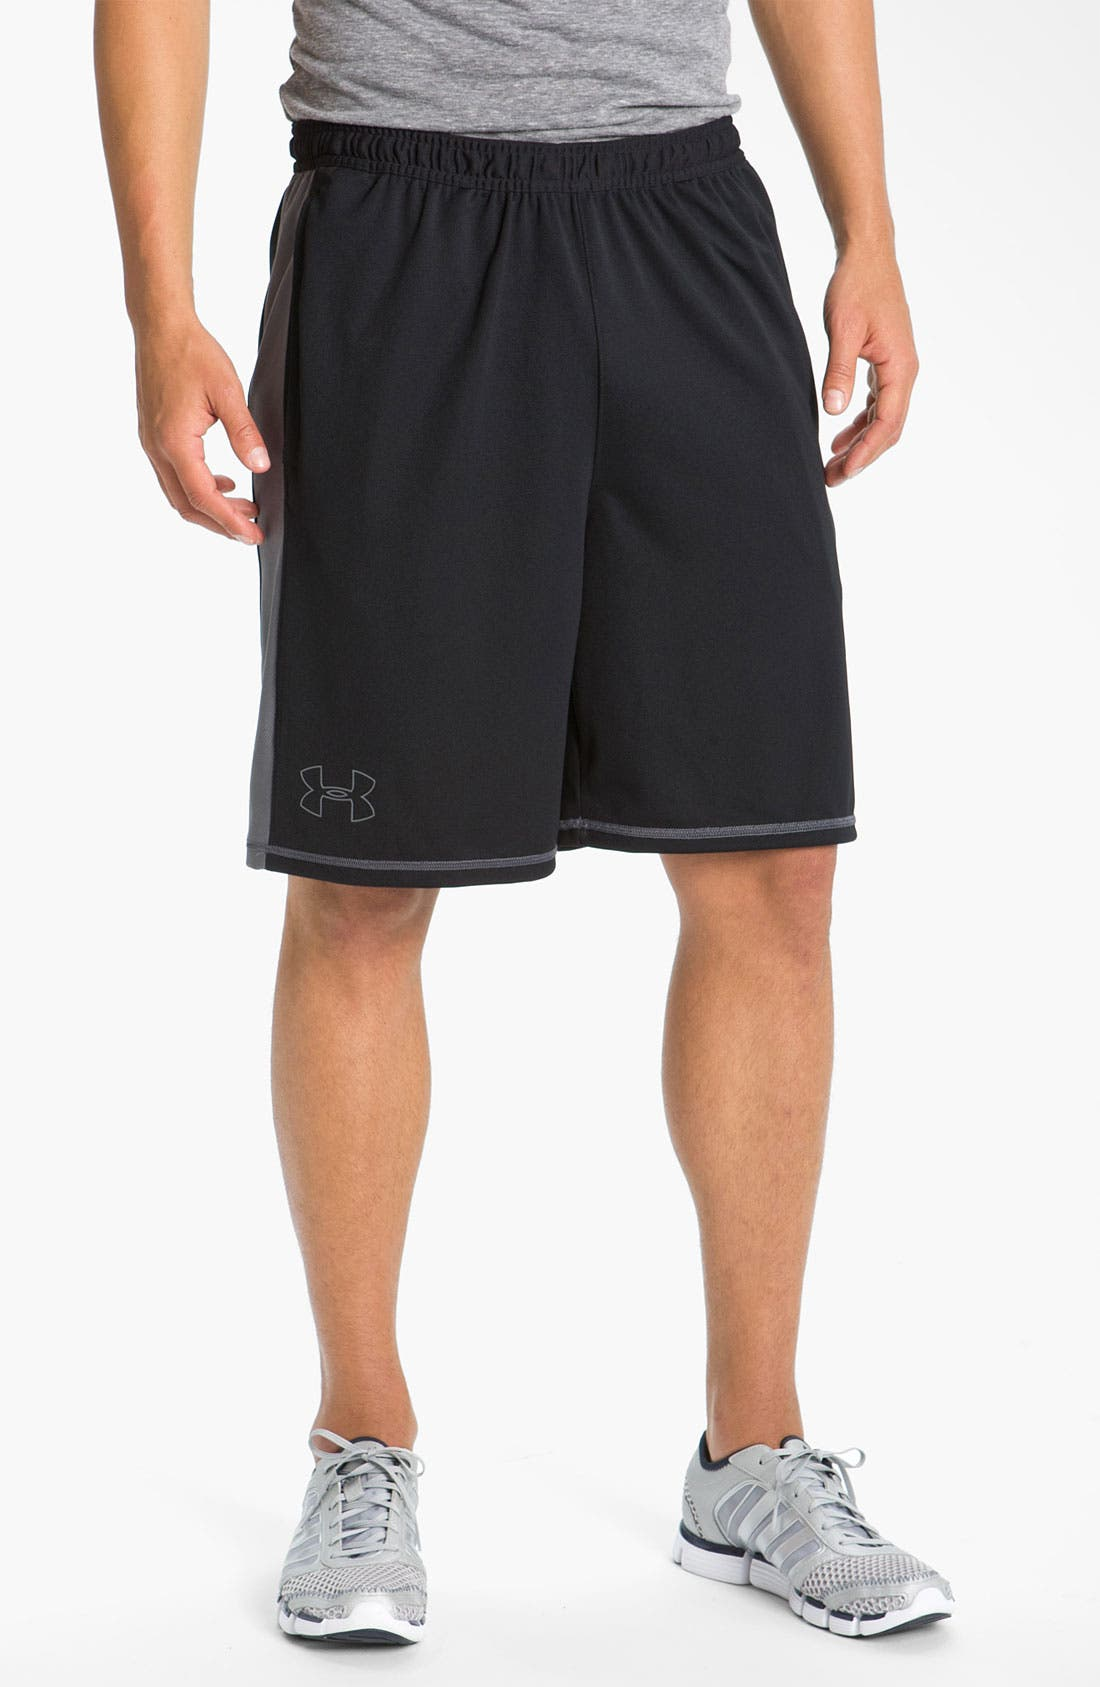 Alternate Image 1 Selected - Under Armour 'Advent' HeatGear® Shorts